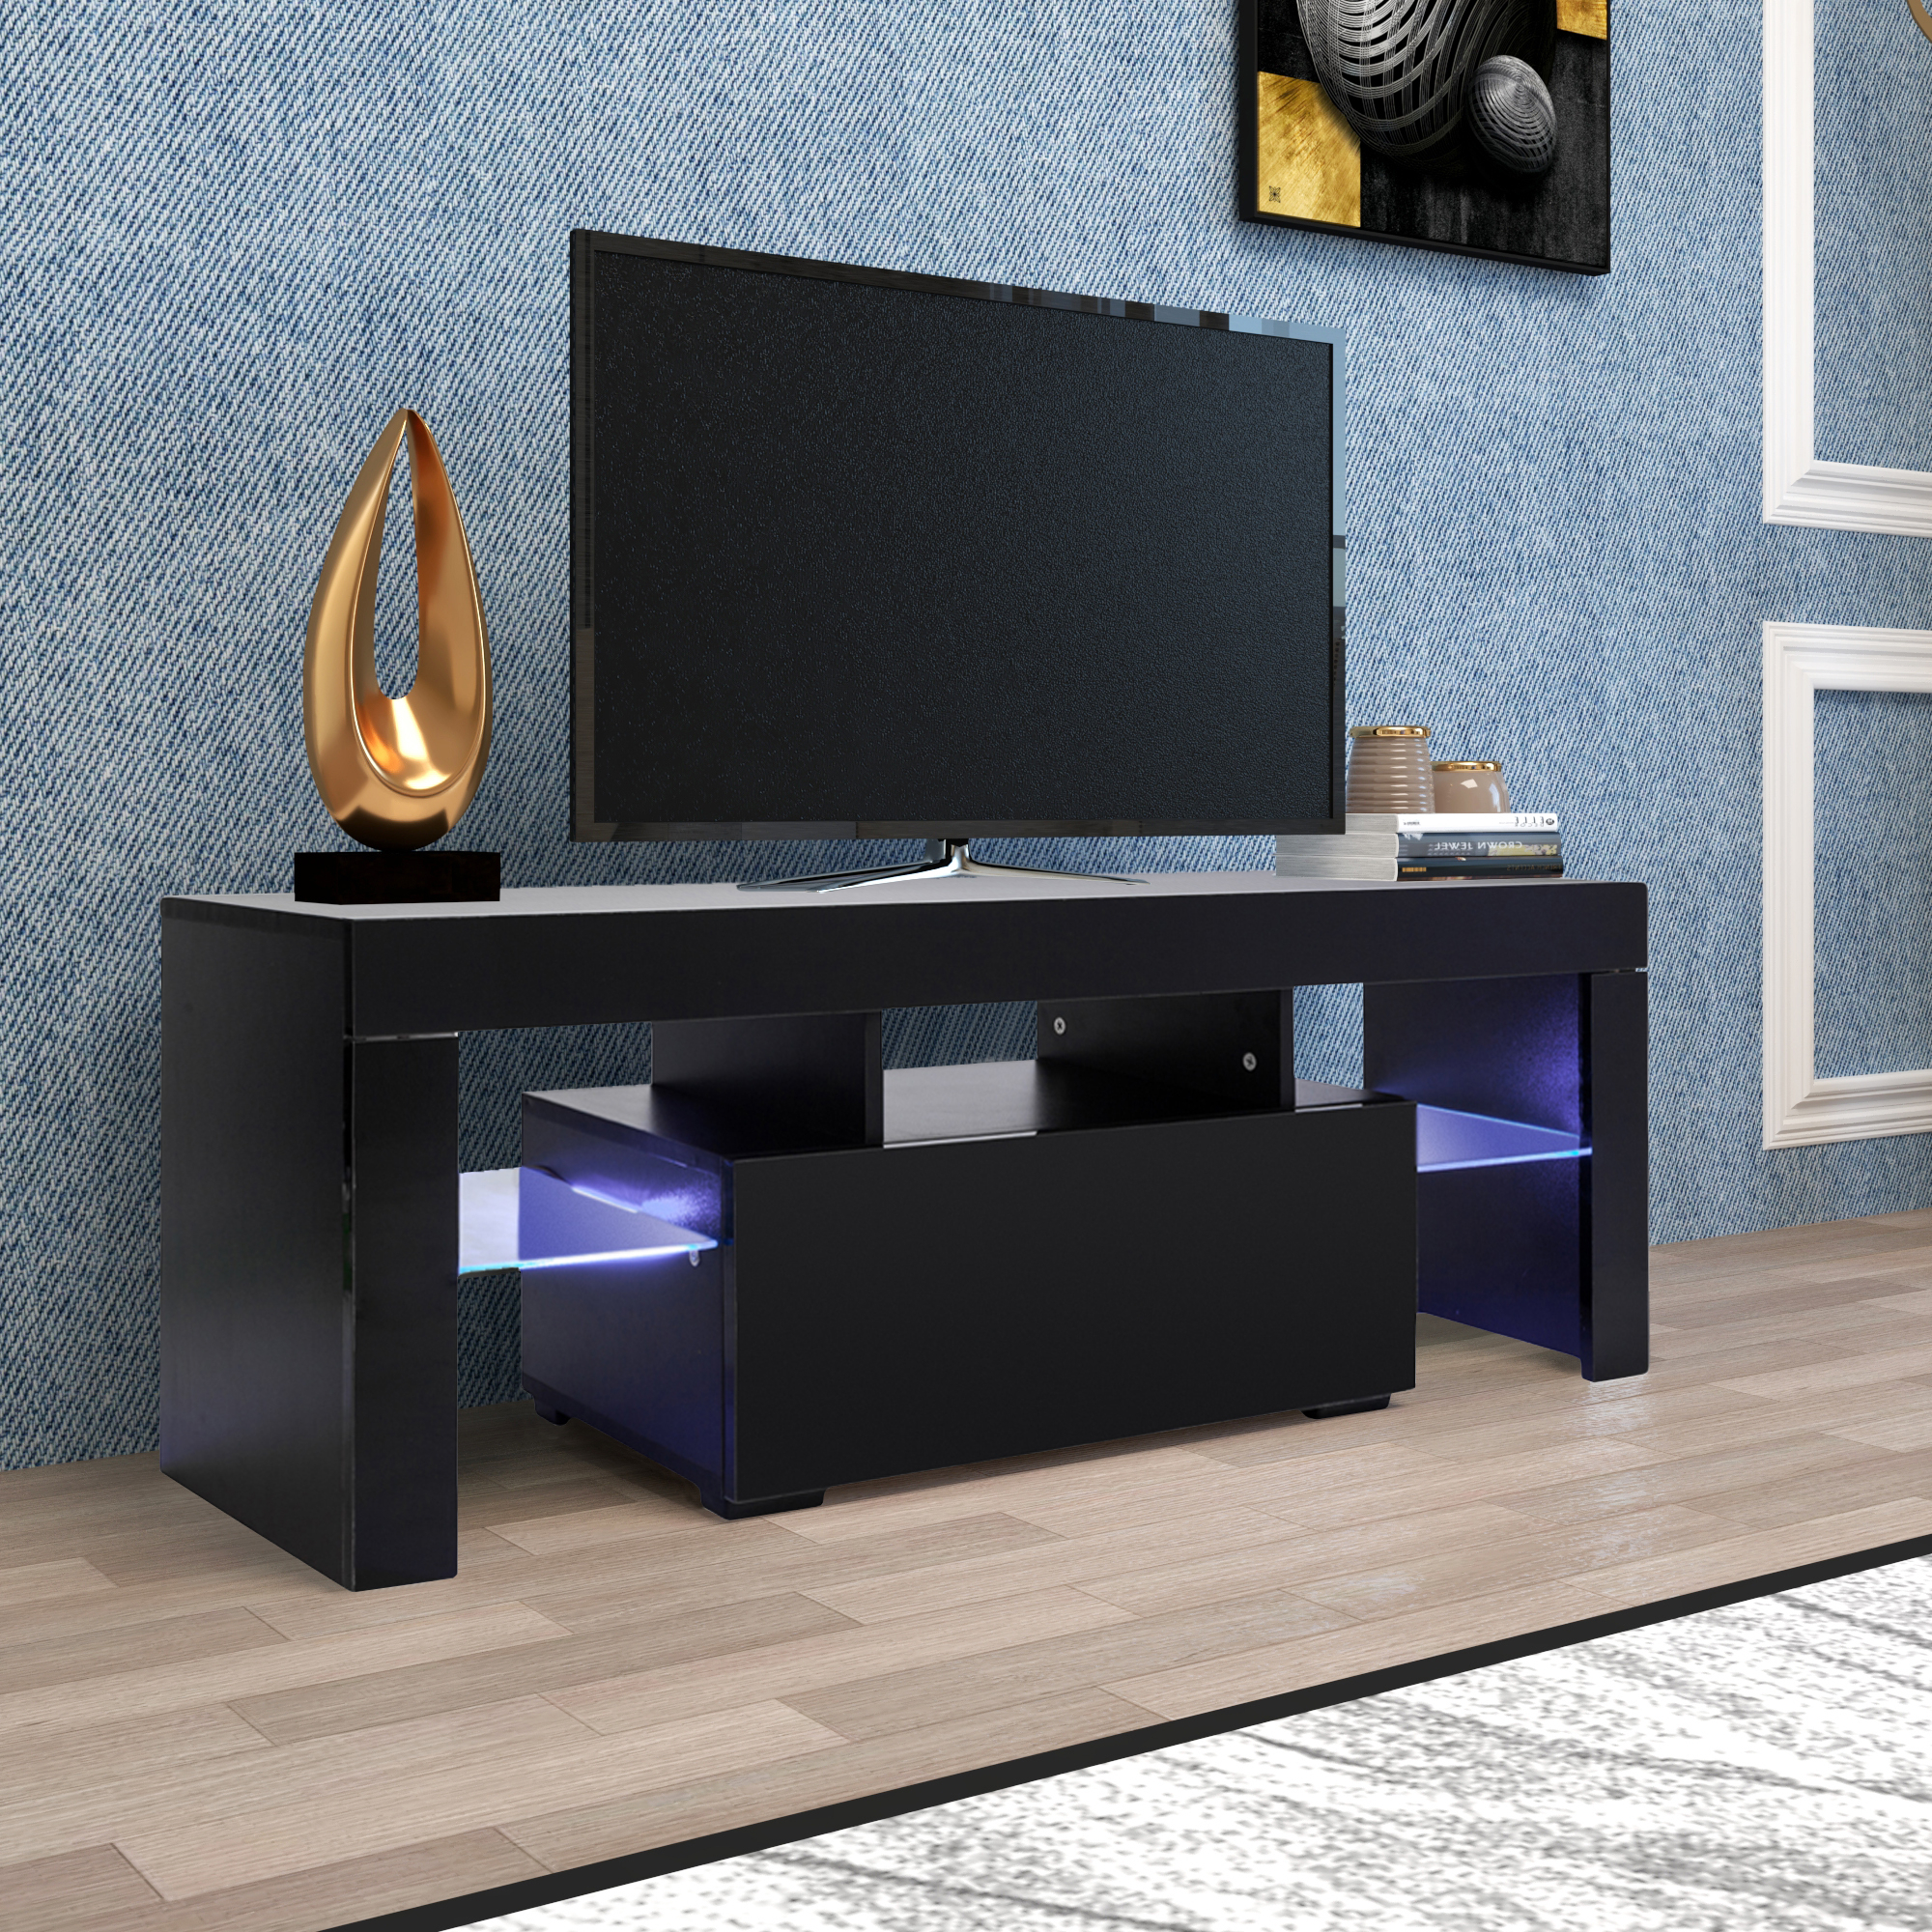 Entertainment Centers And Tv Stands, Yofe Tv Stand With With Regard To Most Current 57'' Led Tv Stands Cabinet (View 9 of 10)